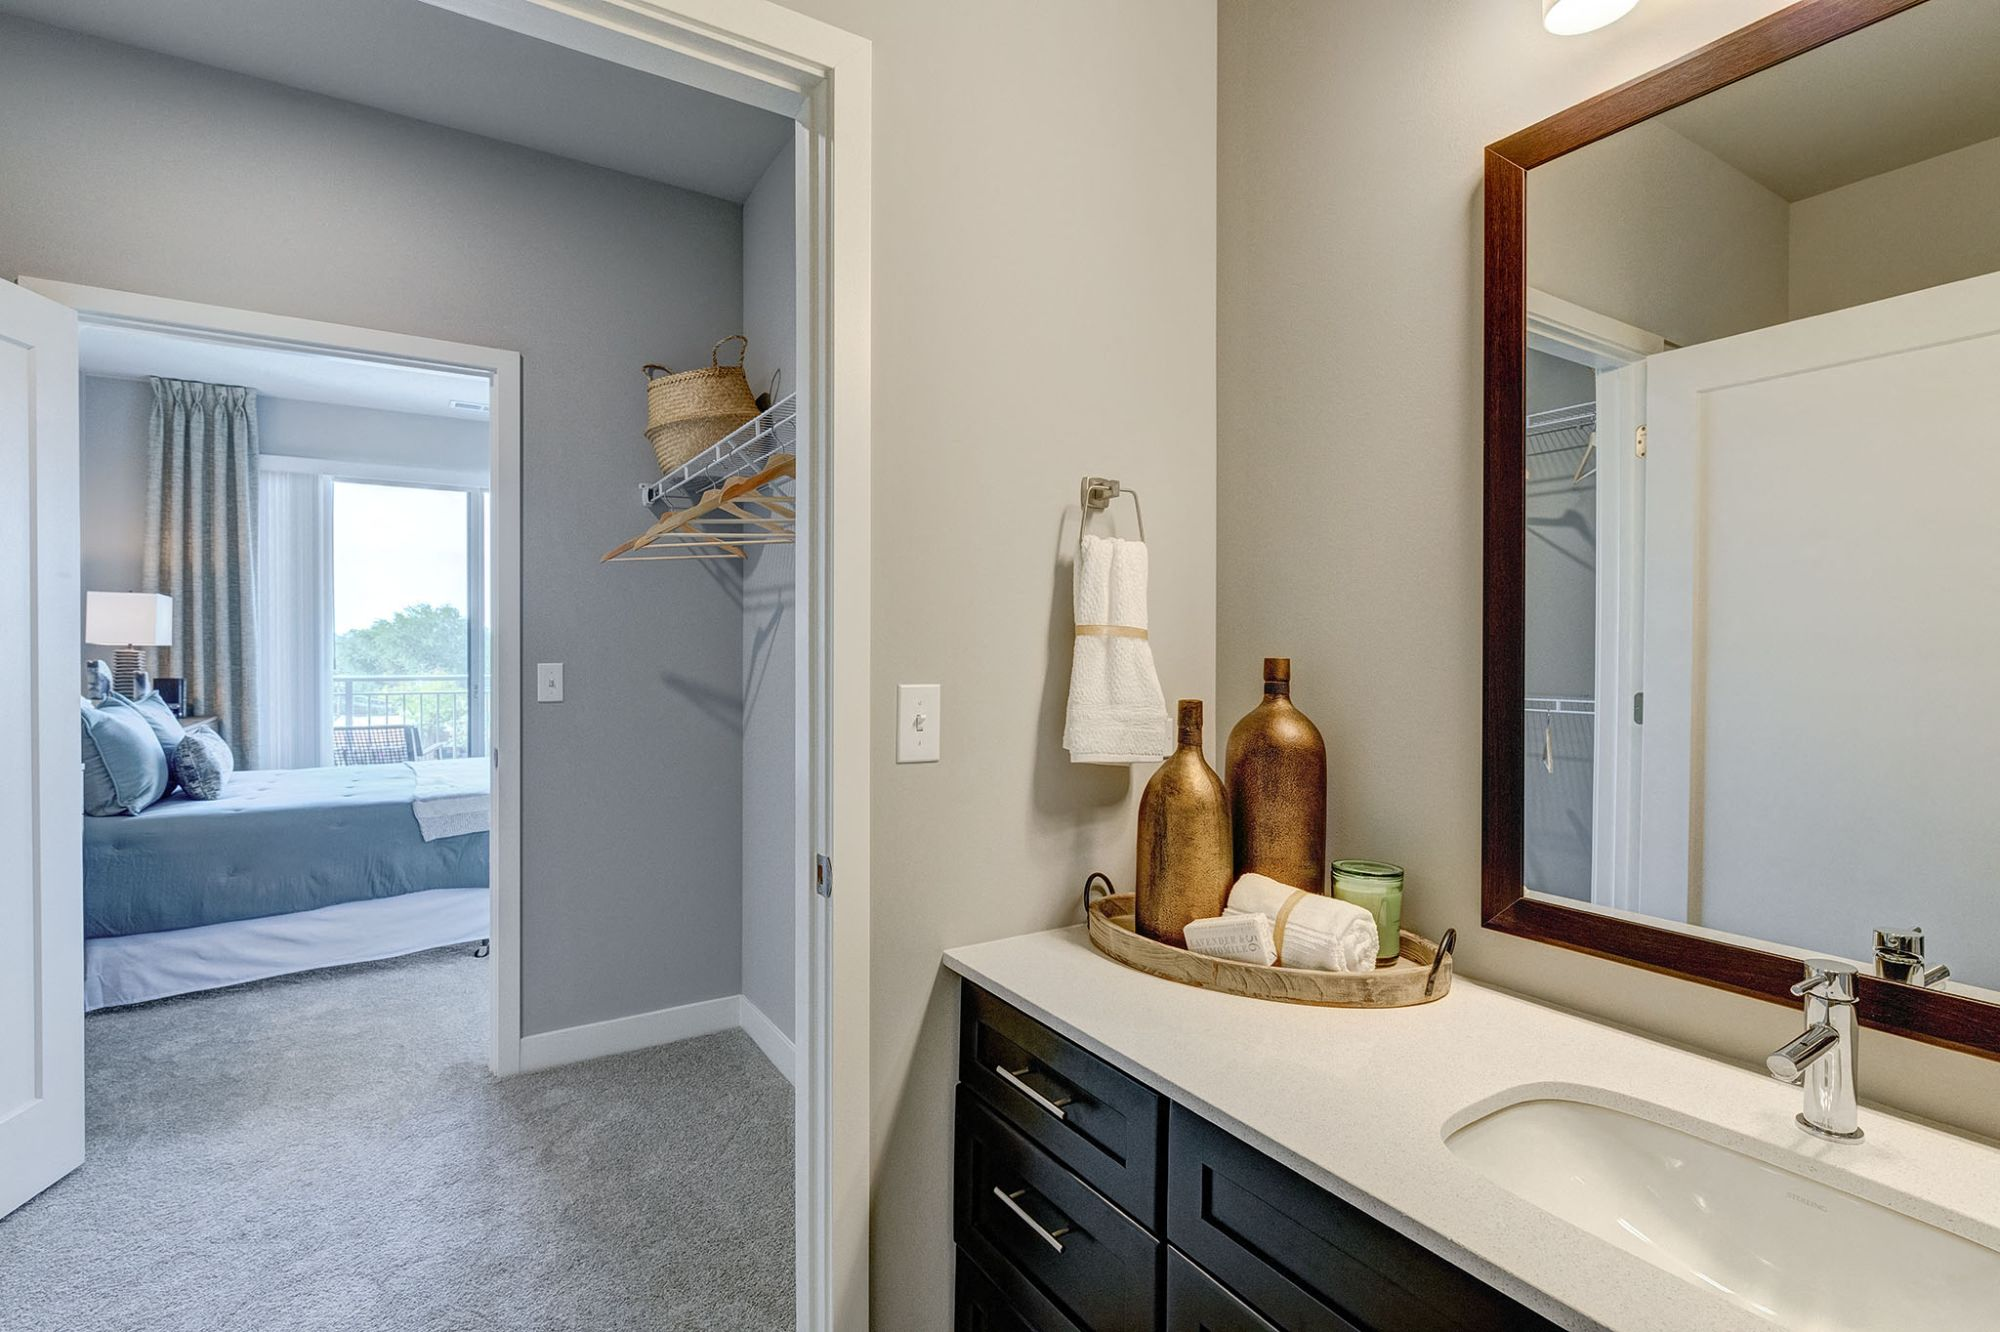 Bathroom counter with mirror